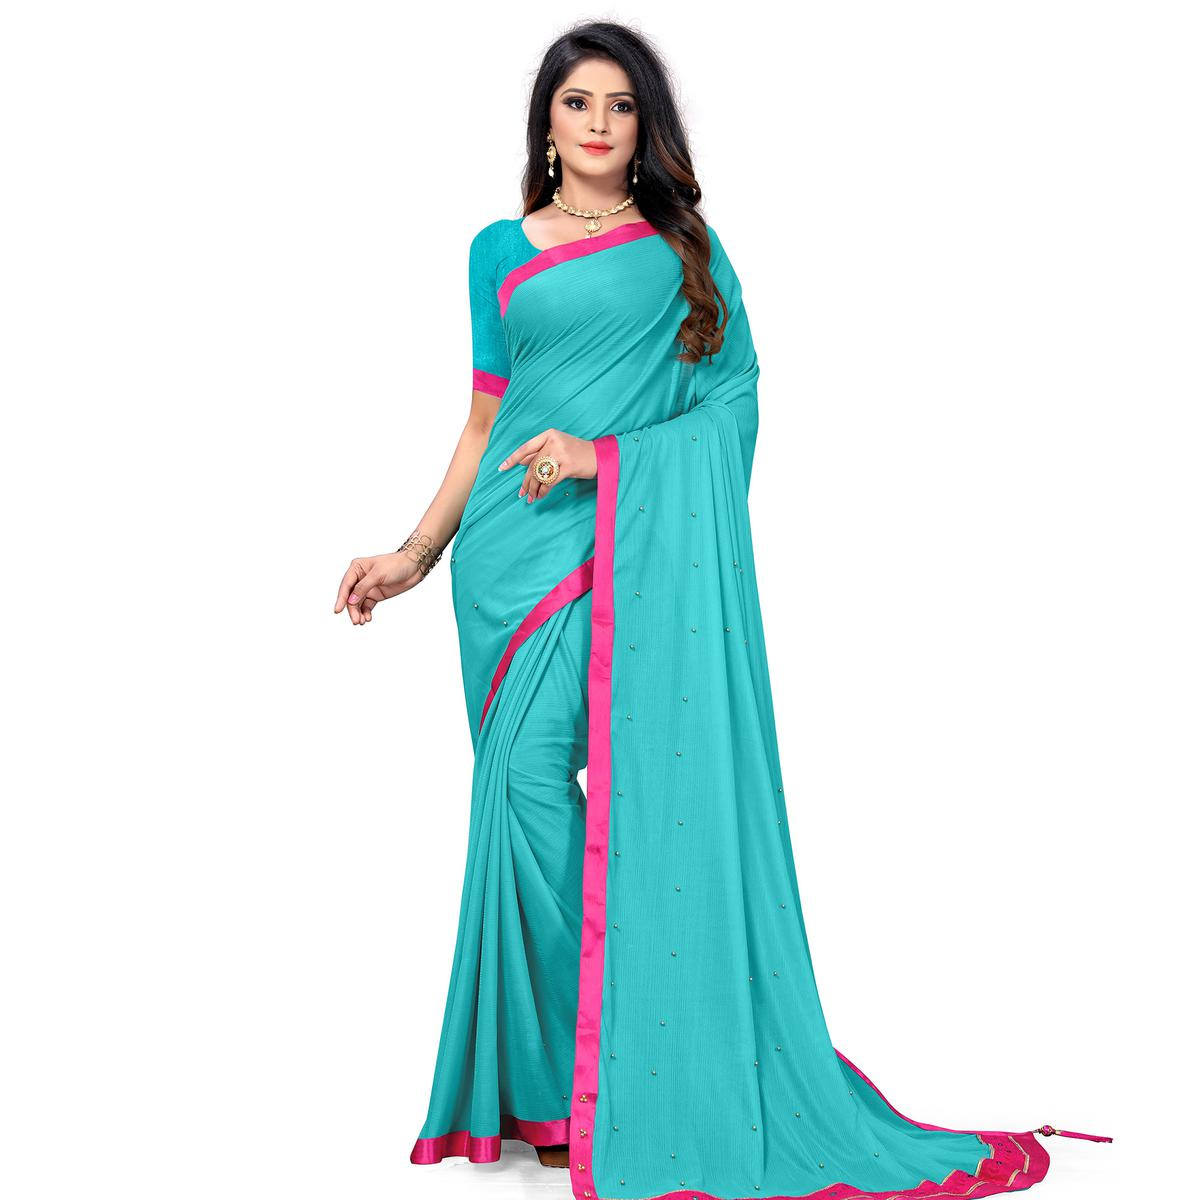 Hypnotic Sky Blue Colored Party Wear Lycra Blend Saree